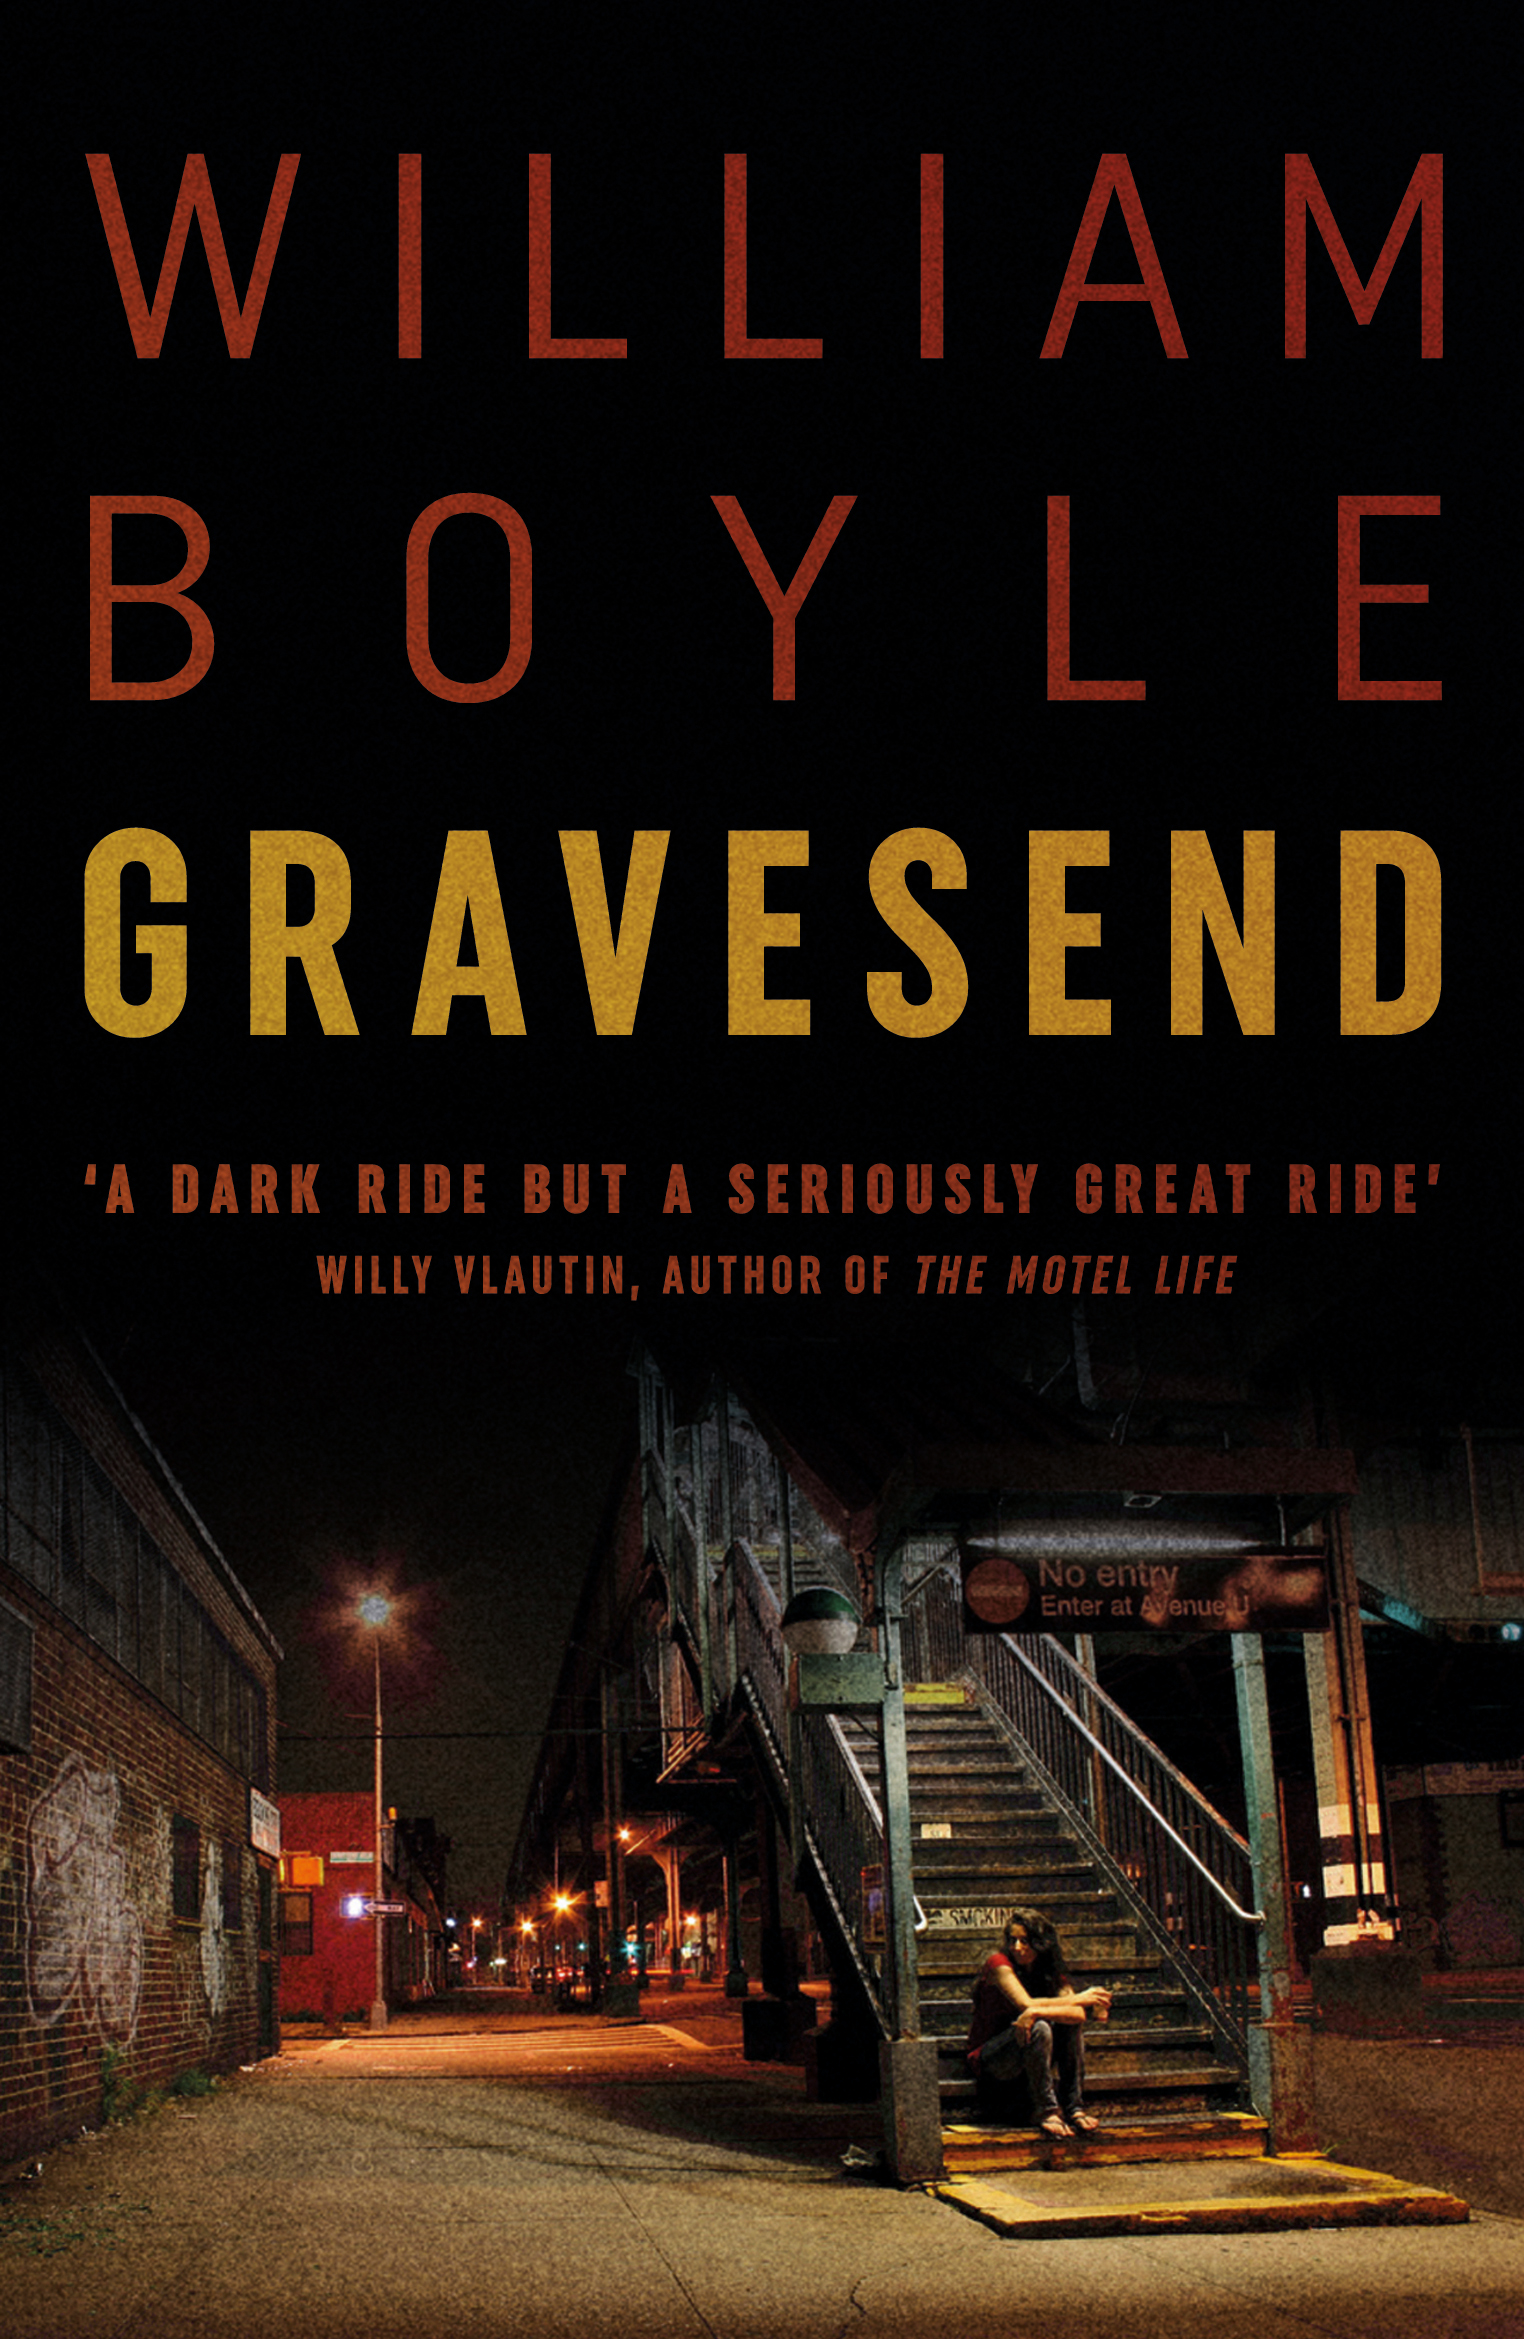 Gravesend – William Boyle [book offer]